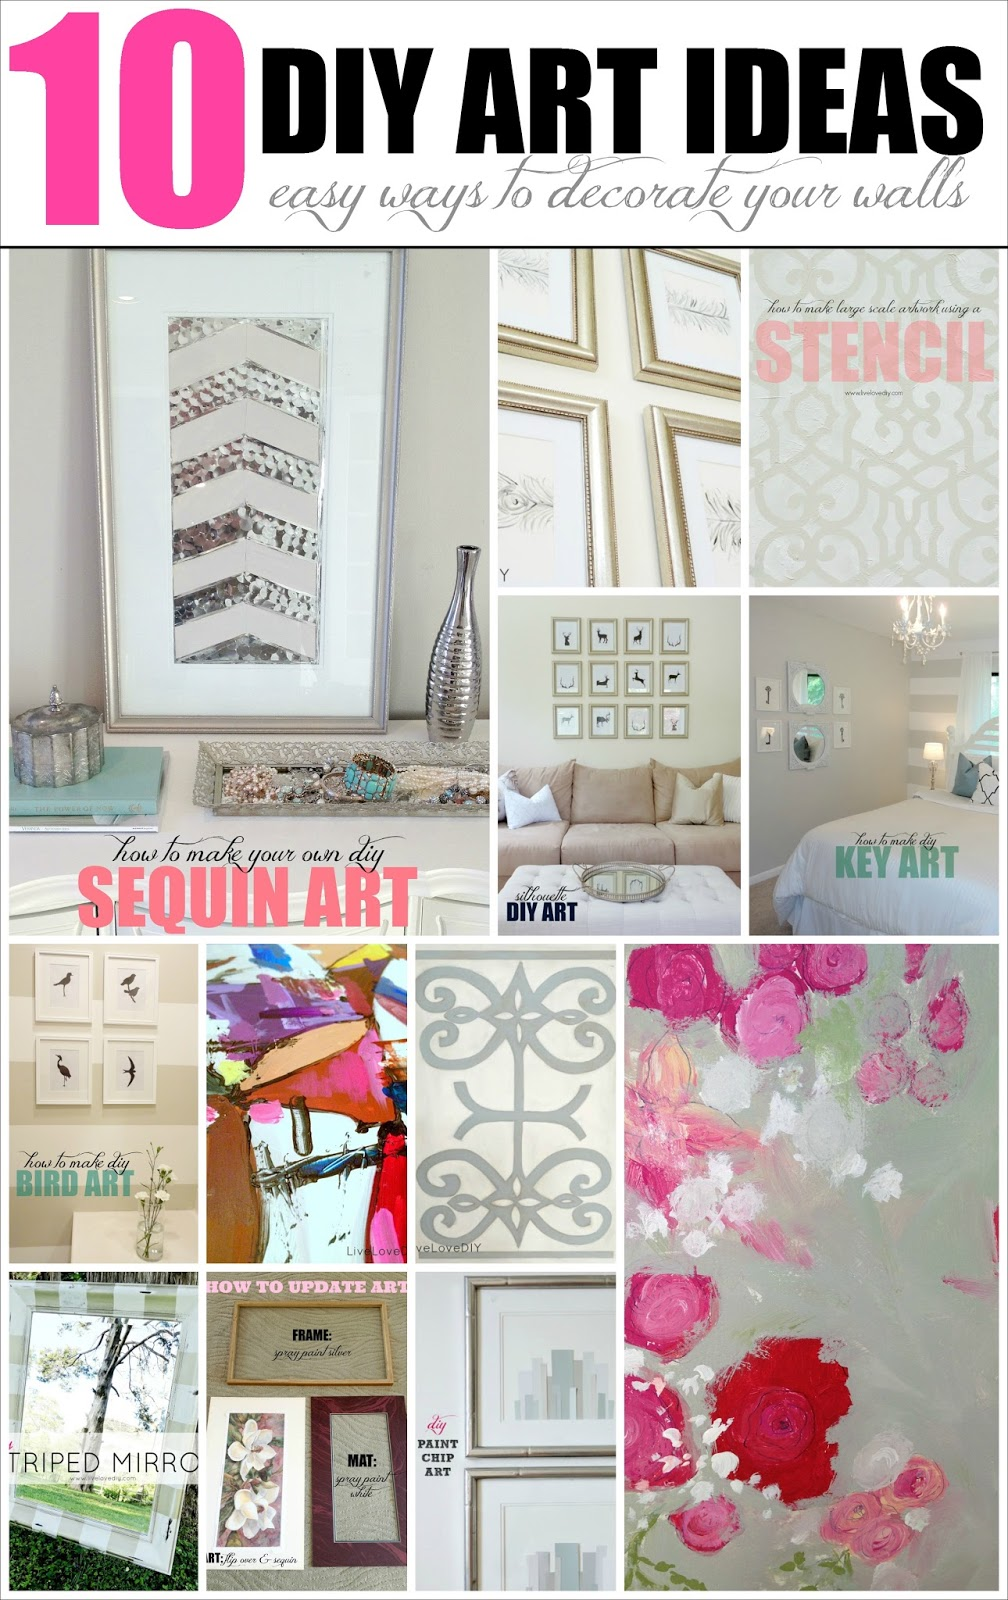 Livelovediy 10 diy art ideas easy ways to decorate your walls follow solutioingenieria